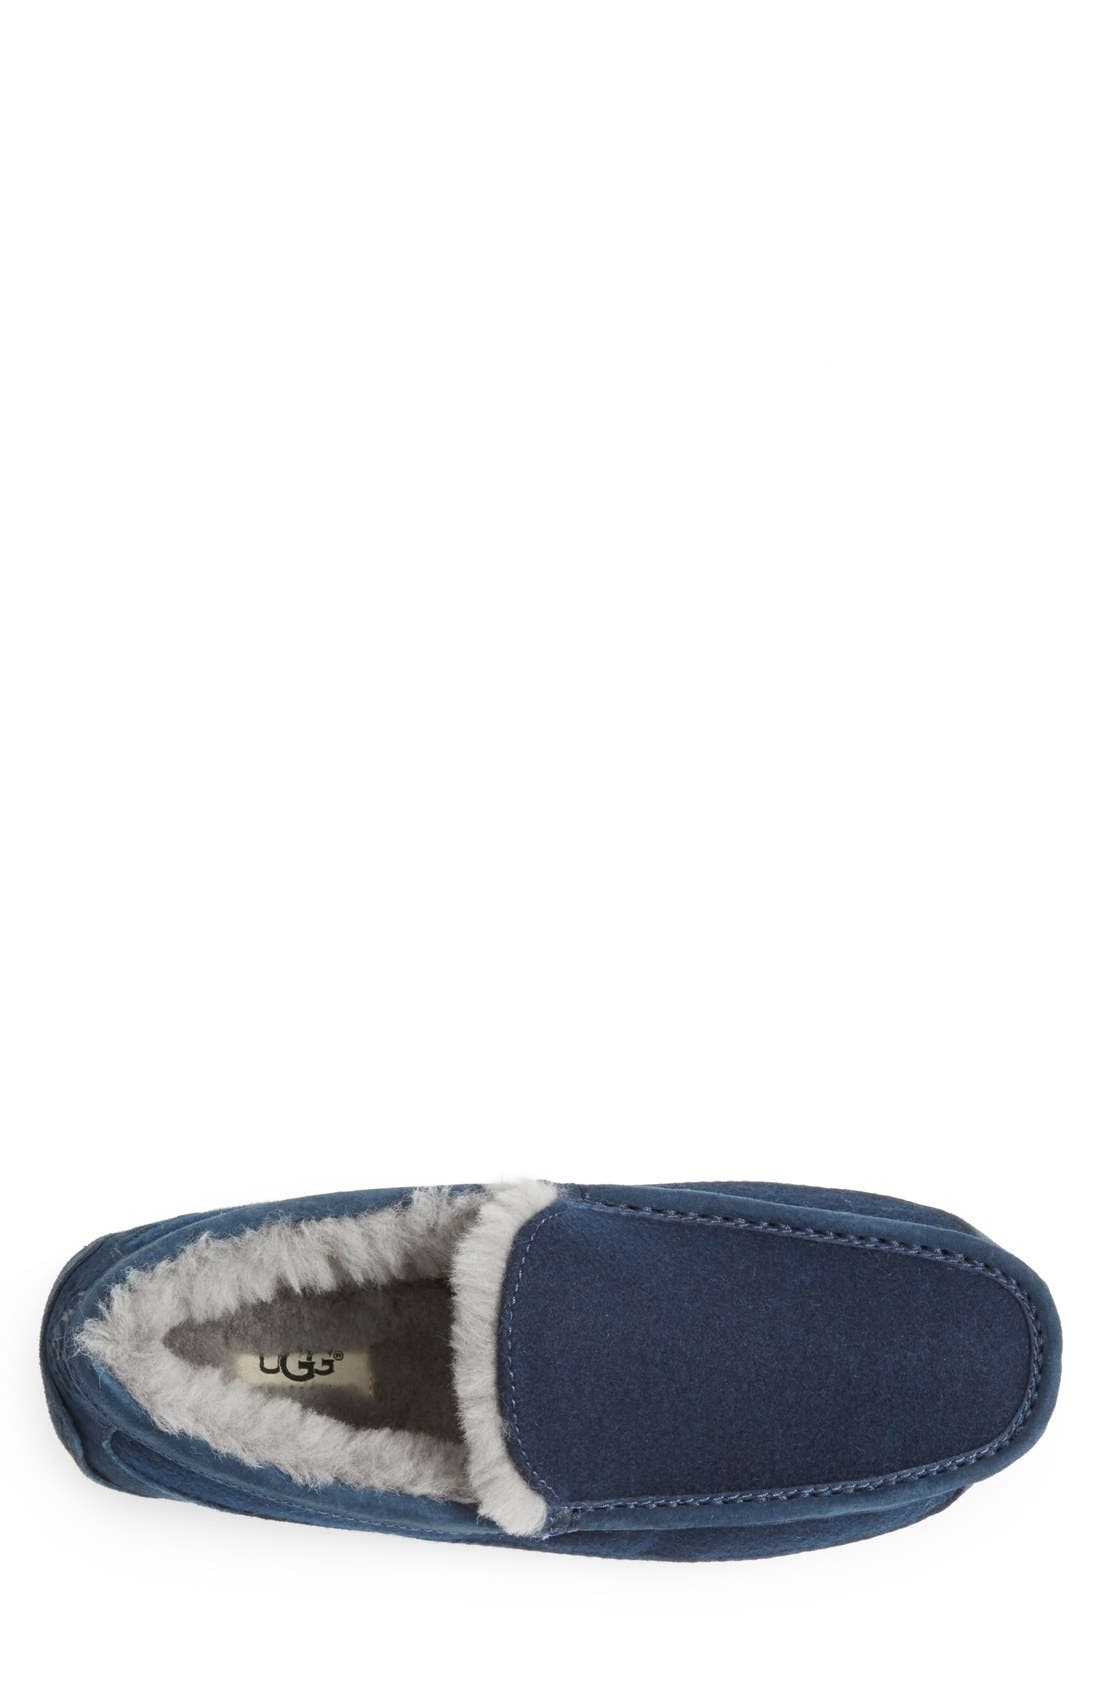 Alternate Image 3  - UGG® Australia 'Ascot' Wool Slipper